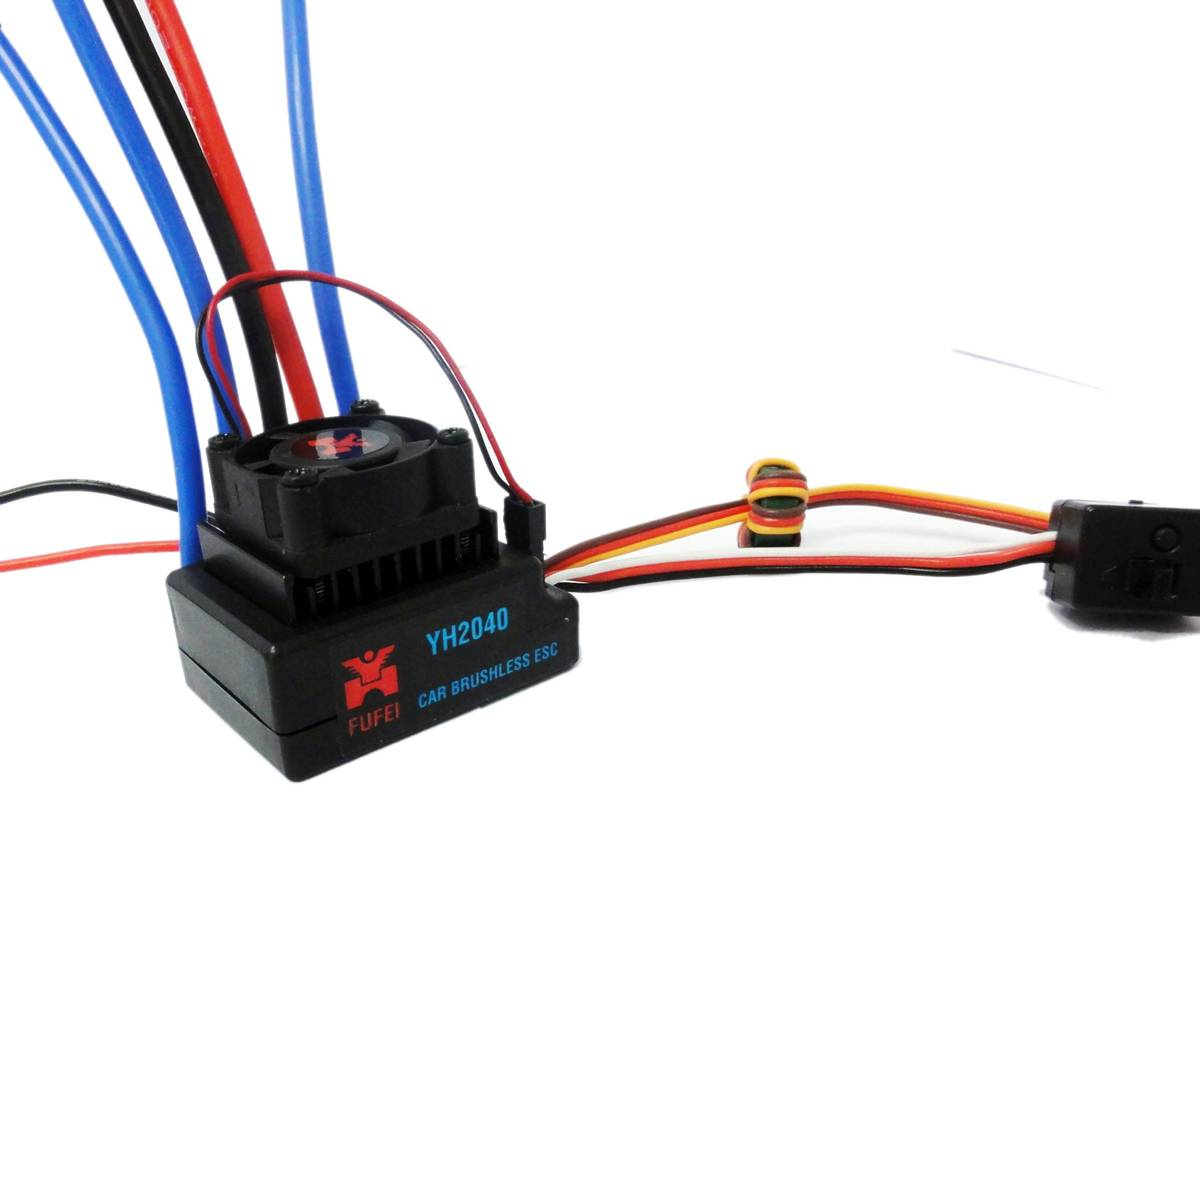 40a brushless esc for 1/12 scale car model